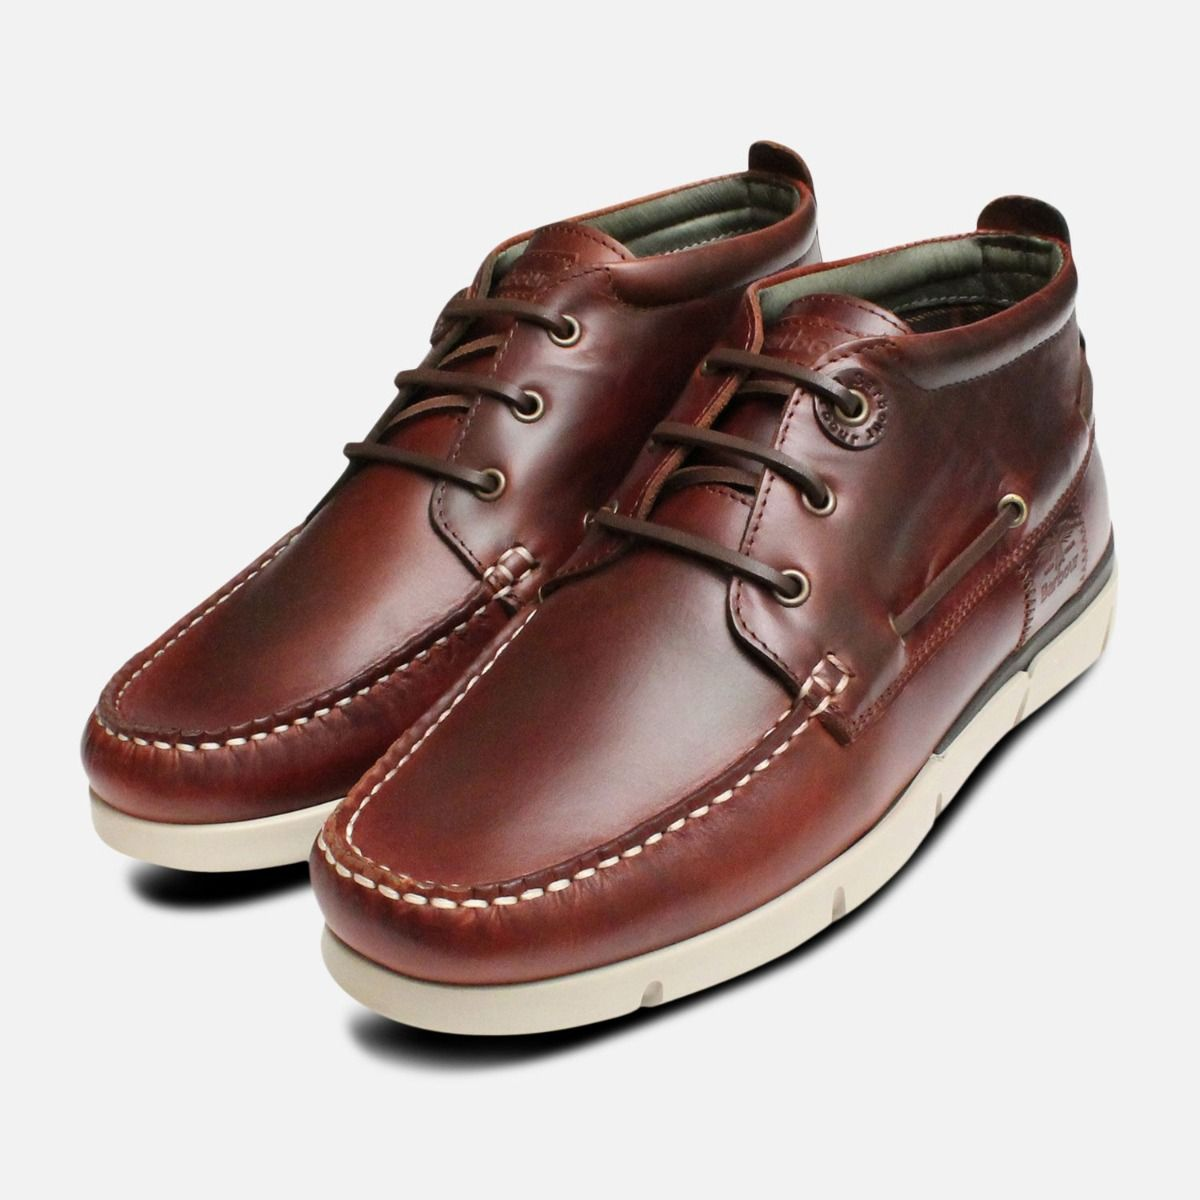 Luxury Barbour Mens Boat Shoes in Waxy